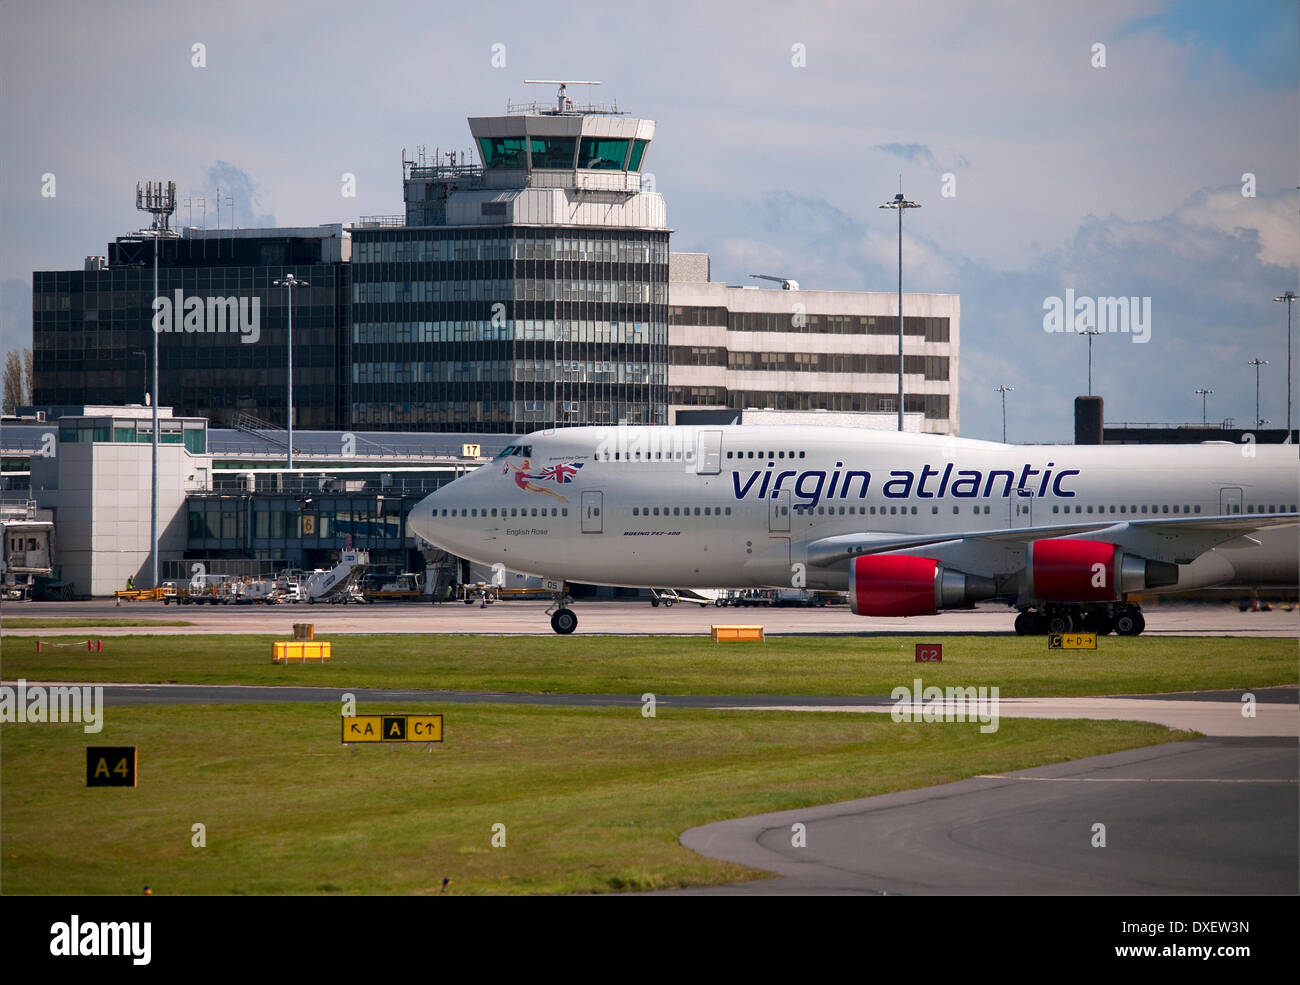 A virgin atlantic boeing 747-400 jumbo arrives at manchester airport 2012 england. - Stock Image